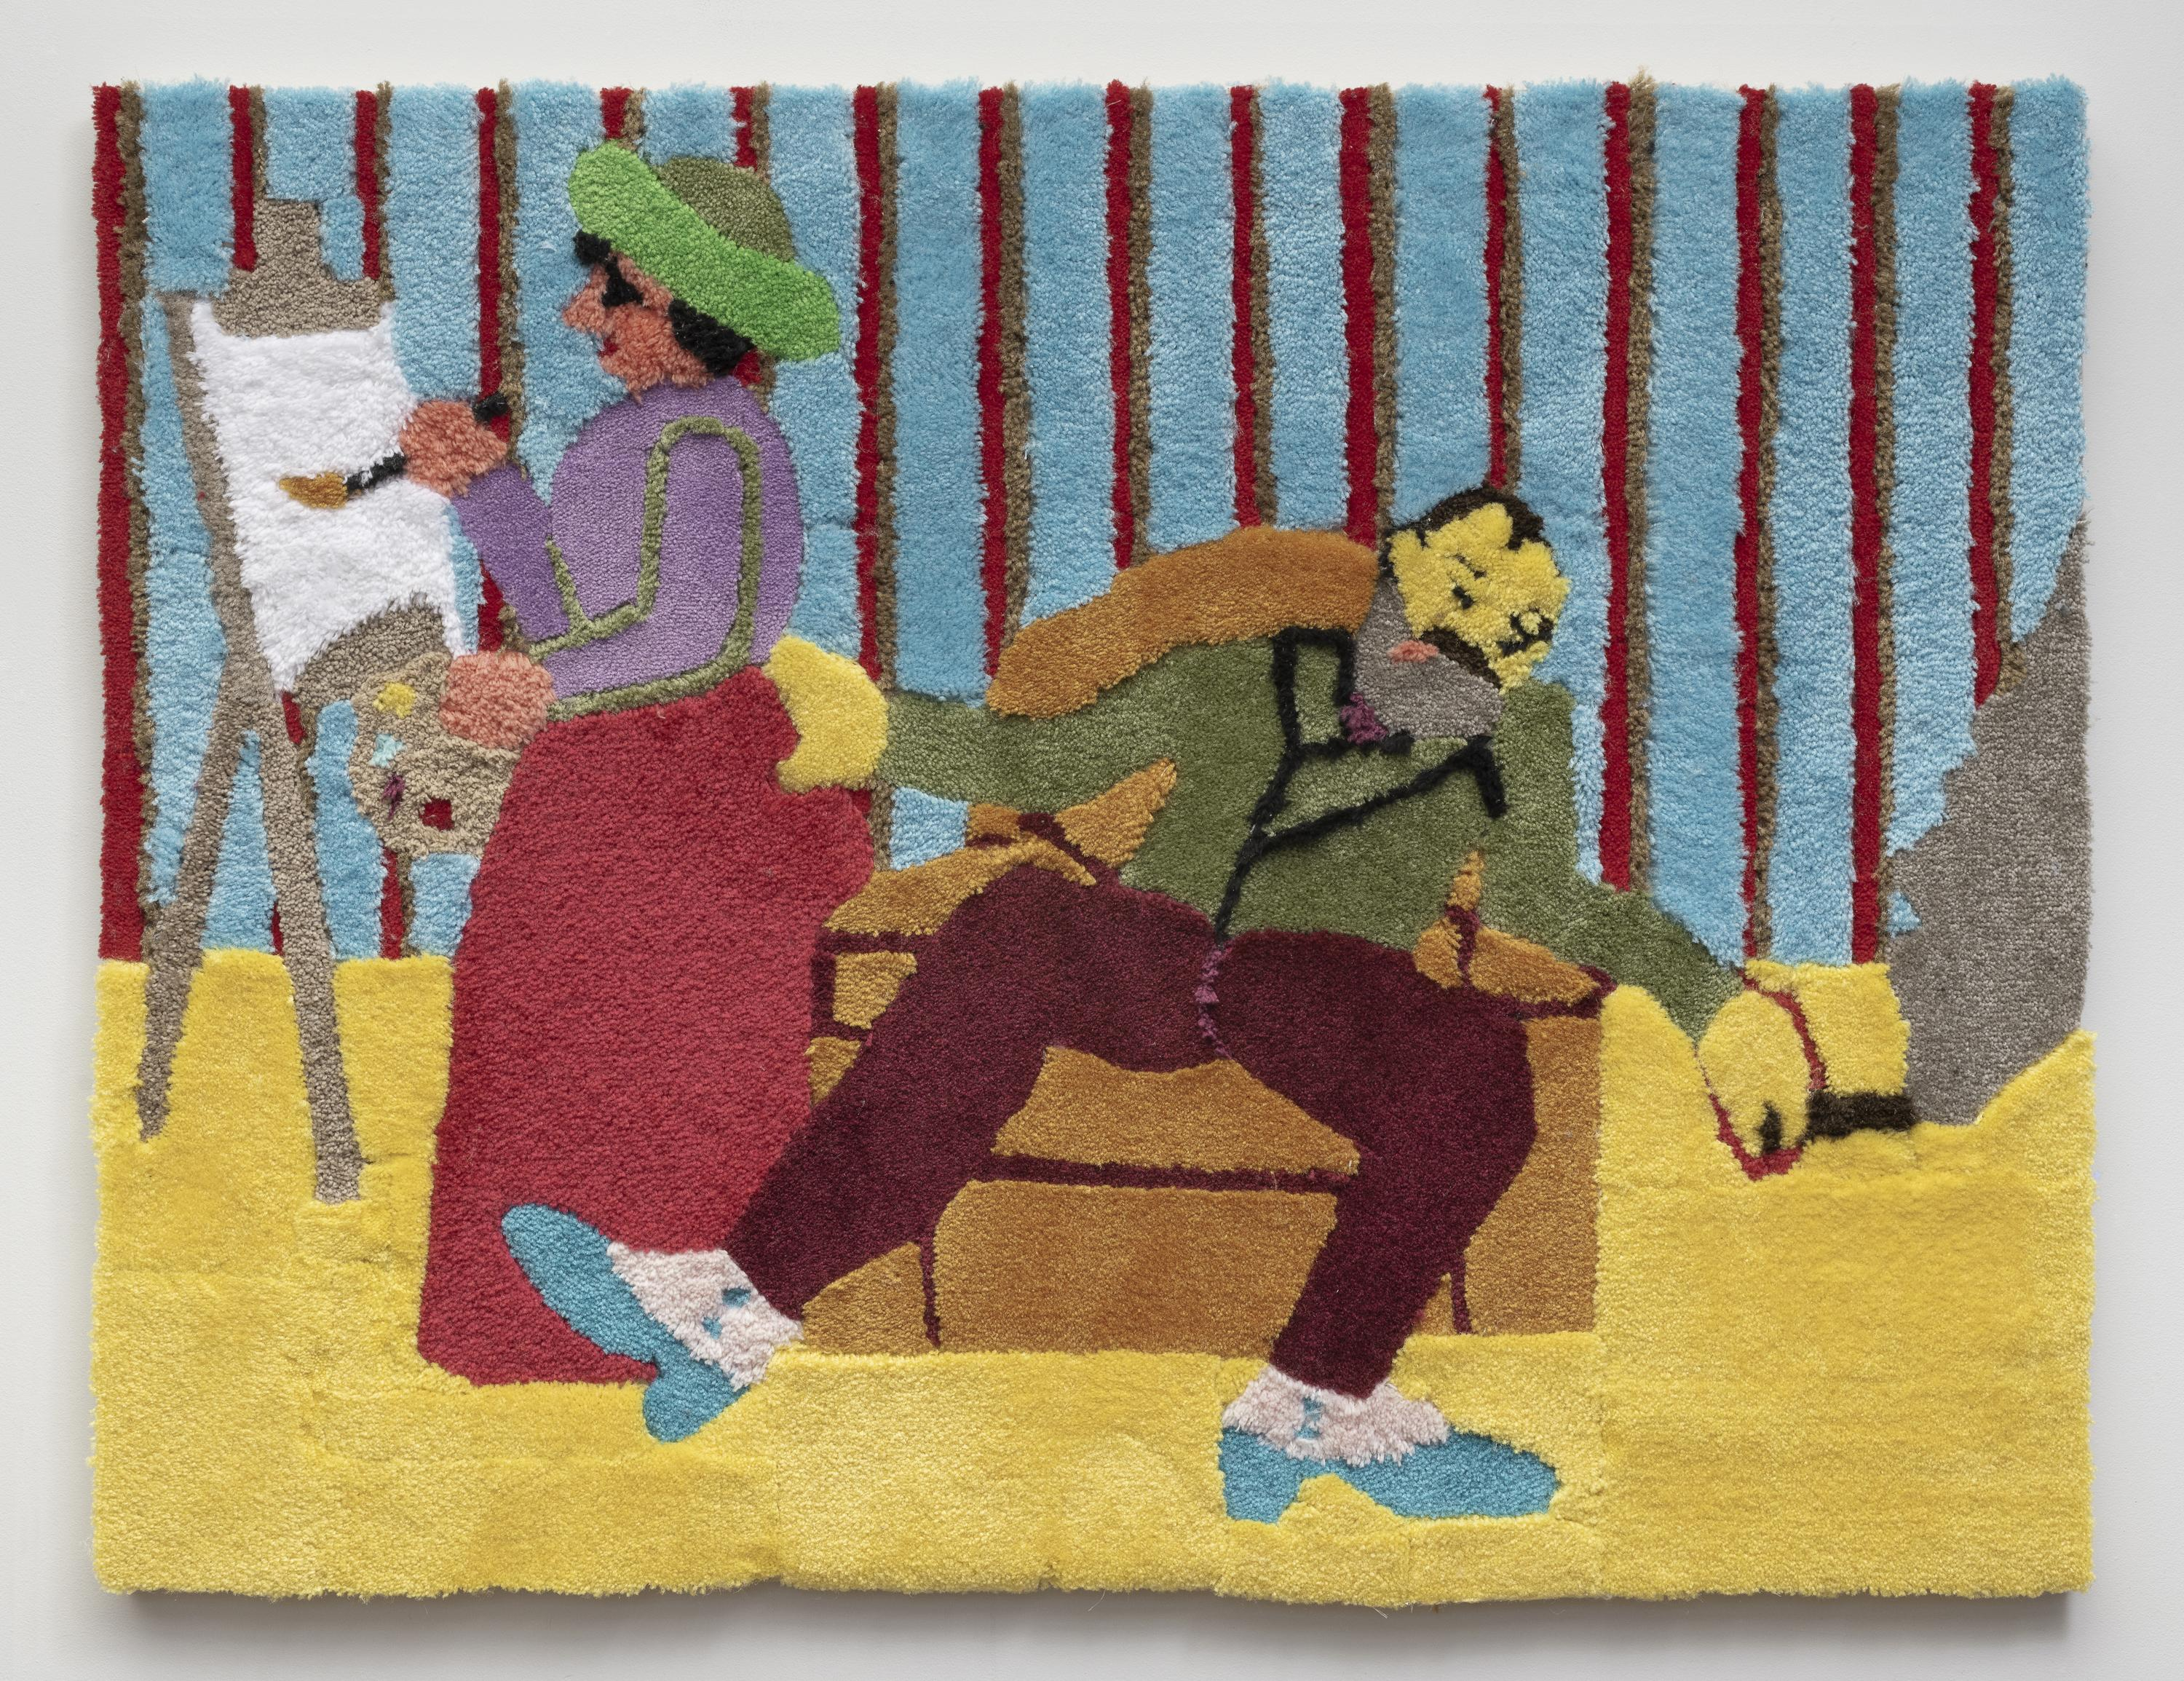 A lopsided man who appears inebriated sits jauntily in a chair. One of his hands holds a smoking cigar while the other rests on the curvaceous butt of a nearby woman who stands, painting on an easel.